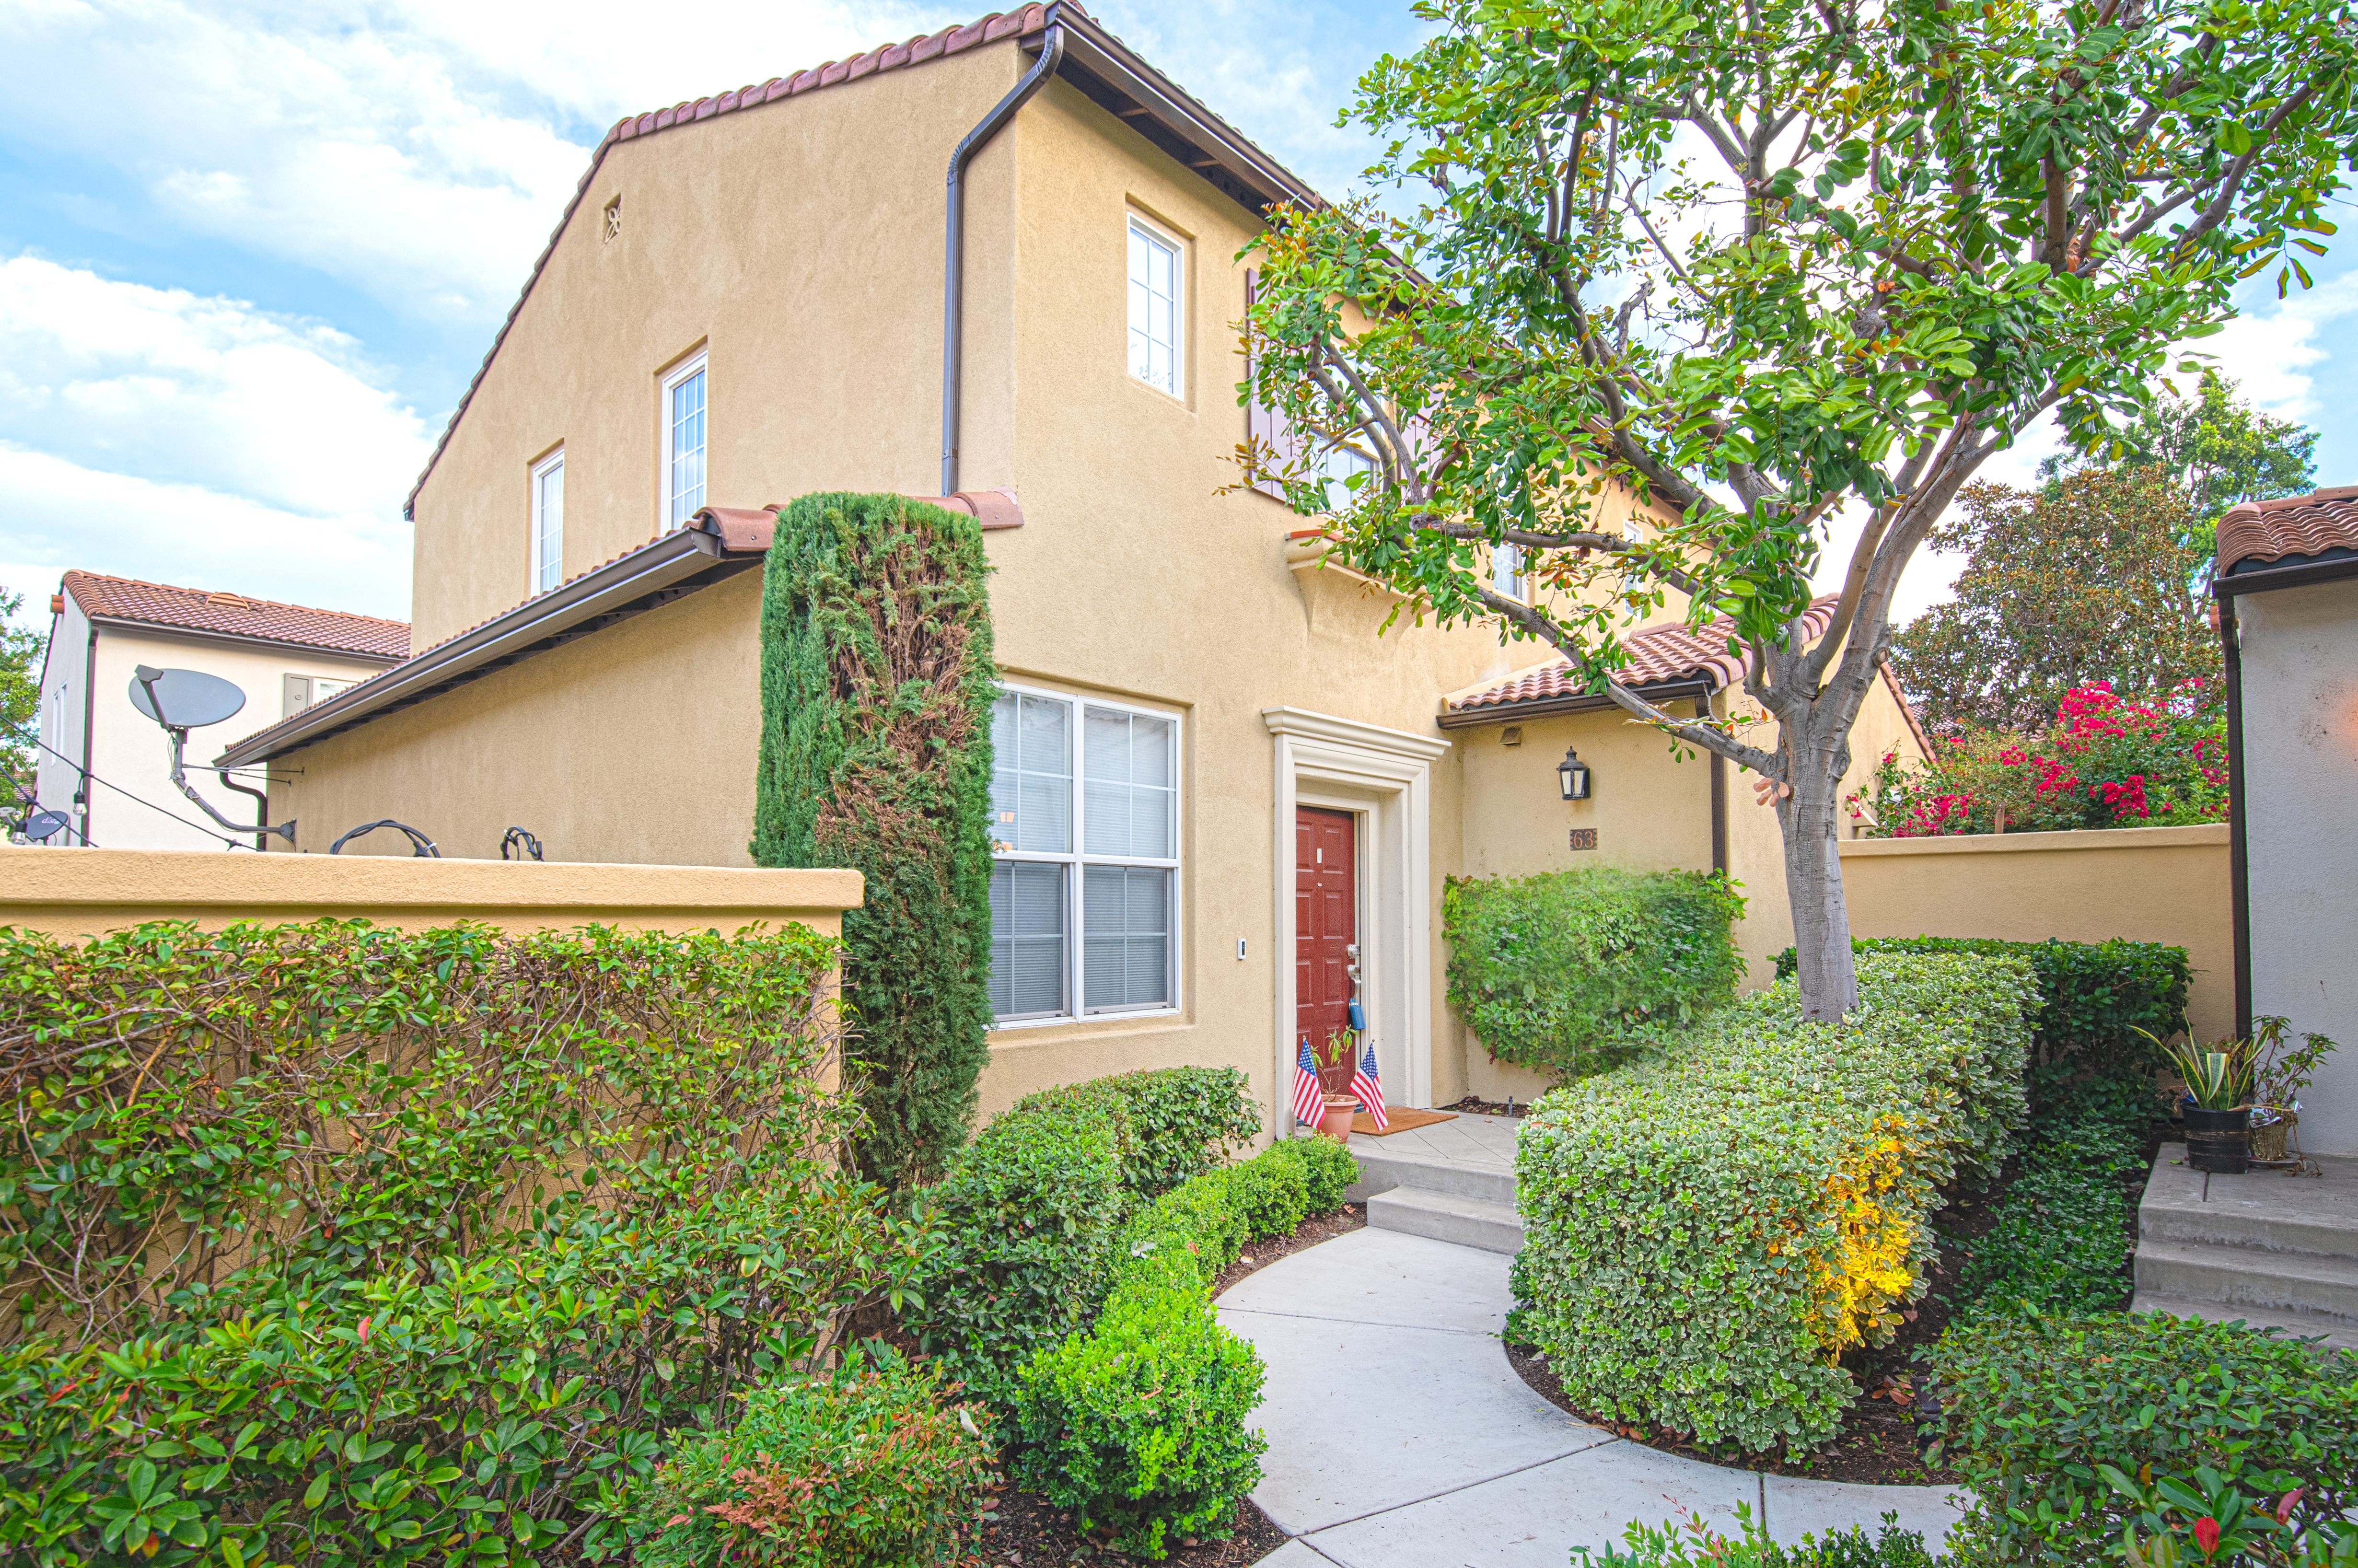 63 Glen Arbor, Irvine CA 92602 – SOLD